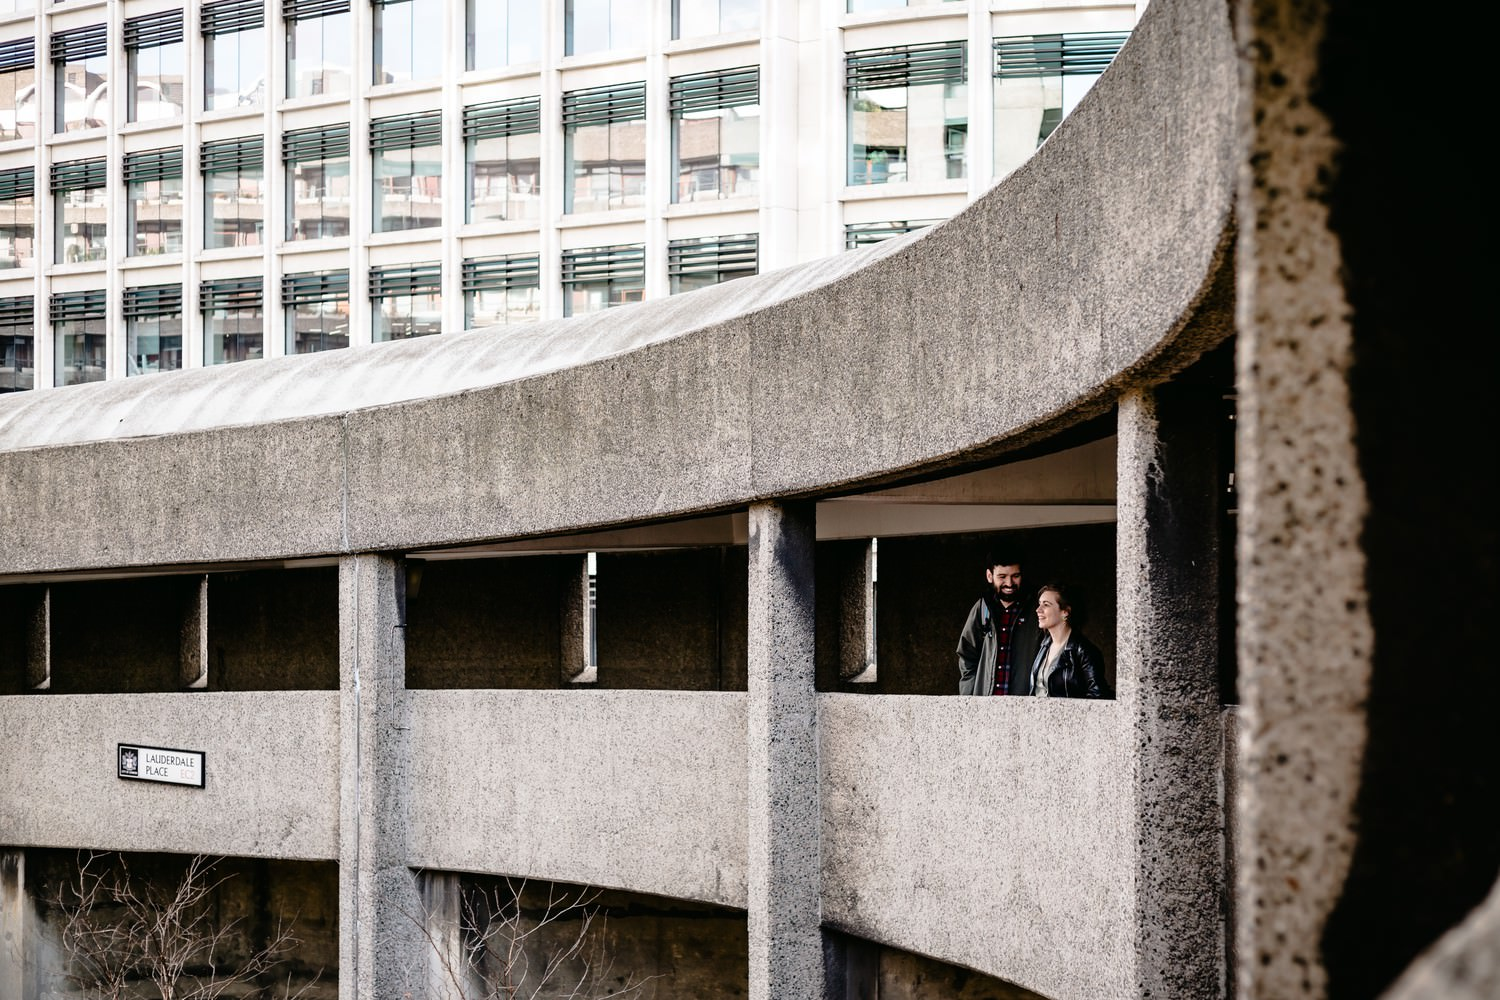 Barbican Engagement Shoot: Heather & David